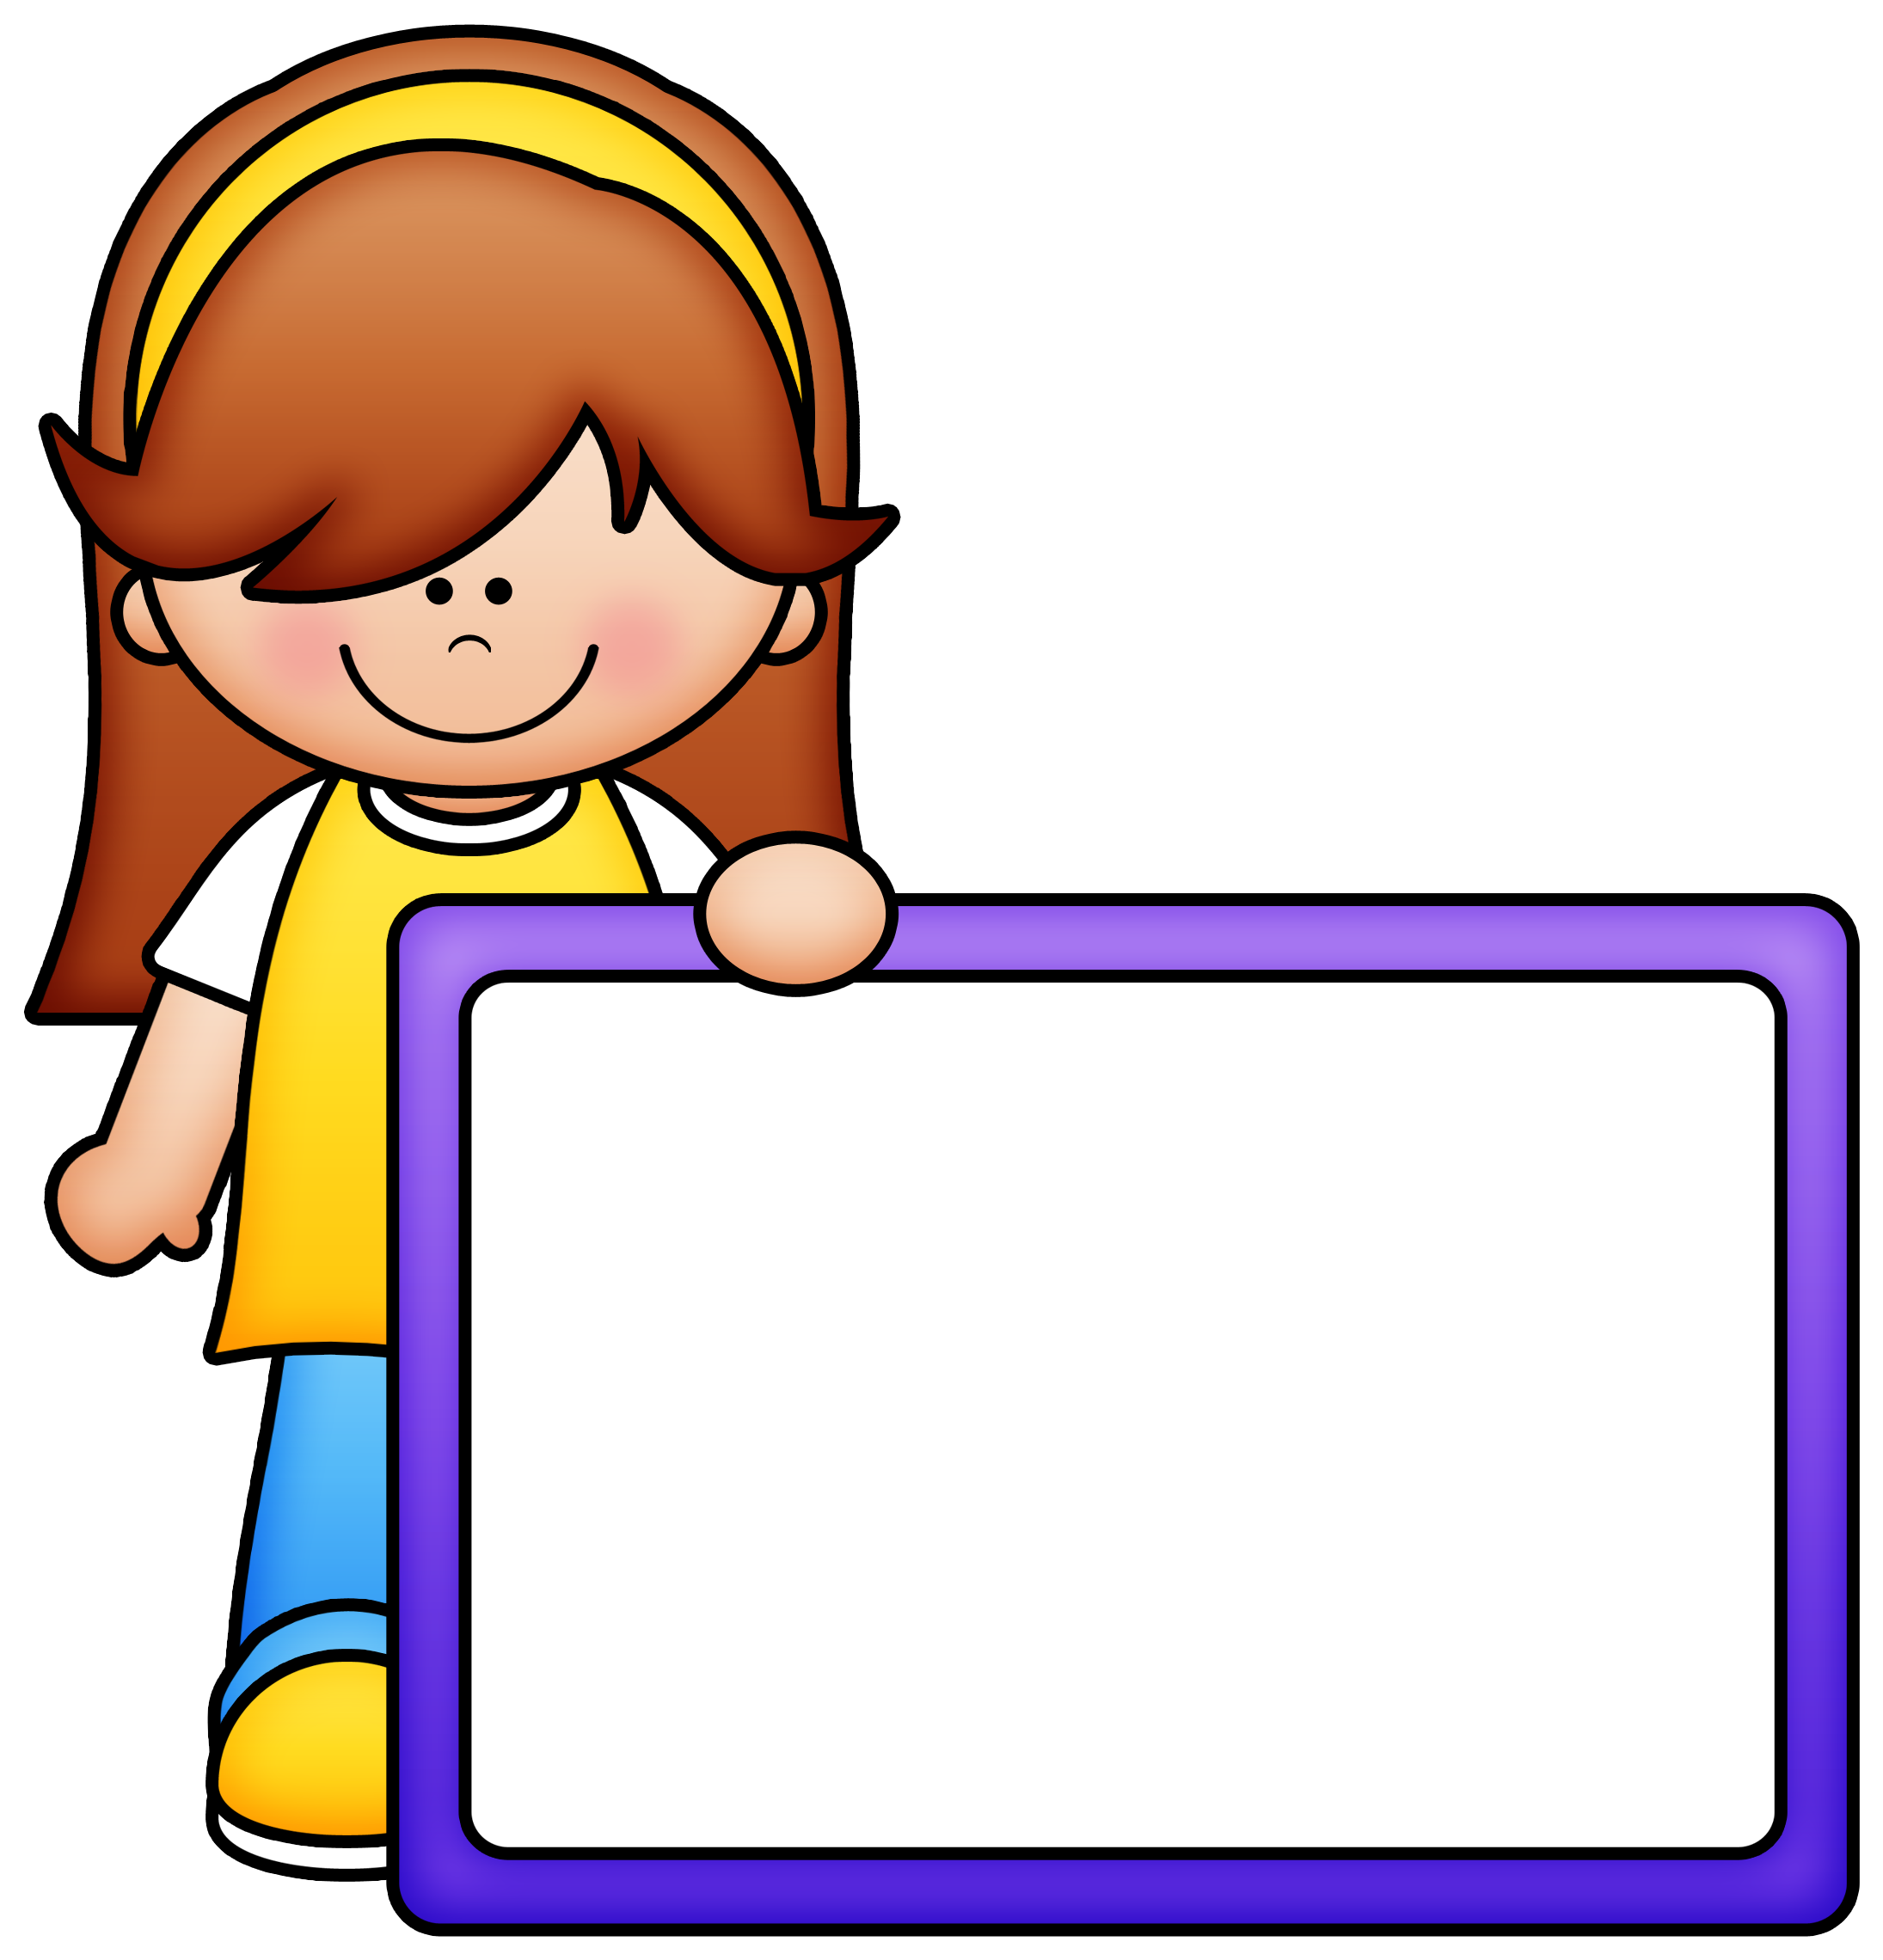 Border clipart for school picture royalty free download ✿**✿*PANCARTA*✿**✿* | niños | Pinterest | Clip art, Clipart ... picture royalty free download